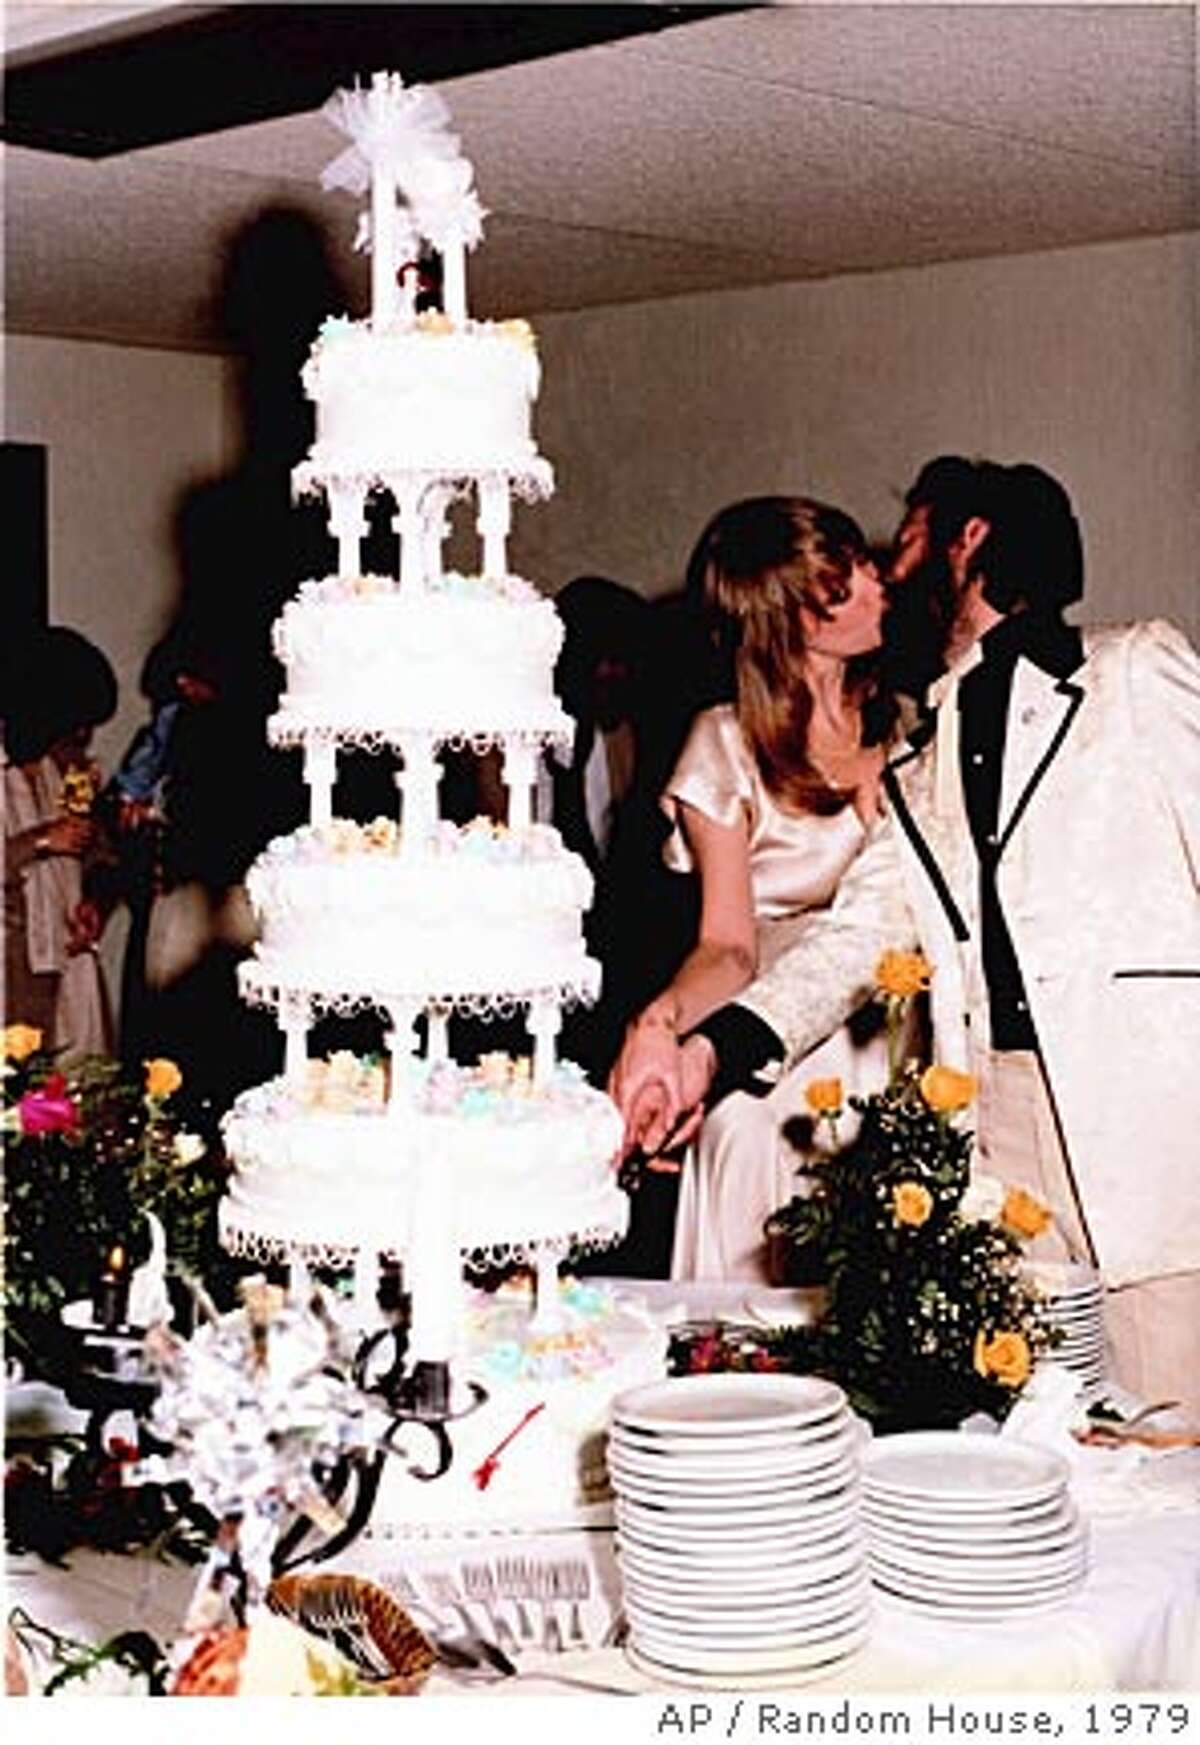 ** ADVANCE FOR MONDAY, OCT. 15 **In this photo released by Random House, Eric Clapton joins Pattie Boyd Harrison, former wife of Beatle George Harrison, as they cut their wedding cake in Tucson, Ariz, March 27, 1979. Their star-crossed affair made her the muse for some of Clapton's most memorable songs, including